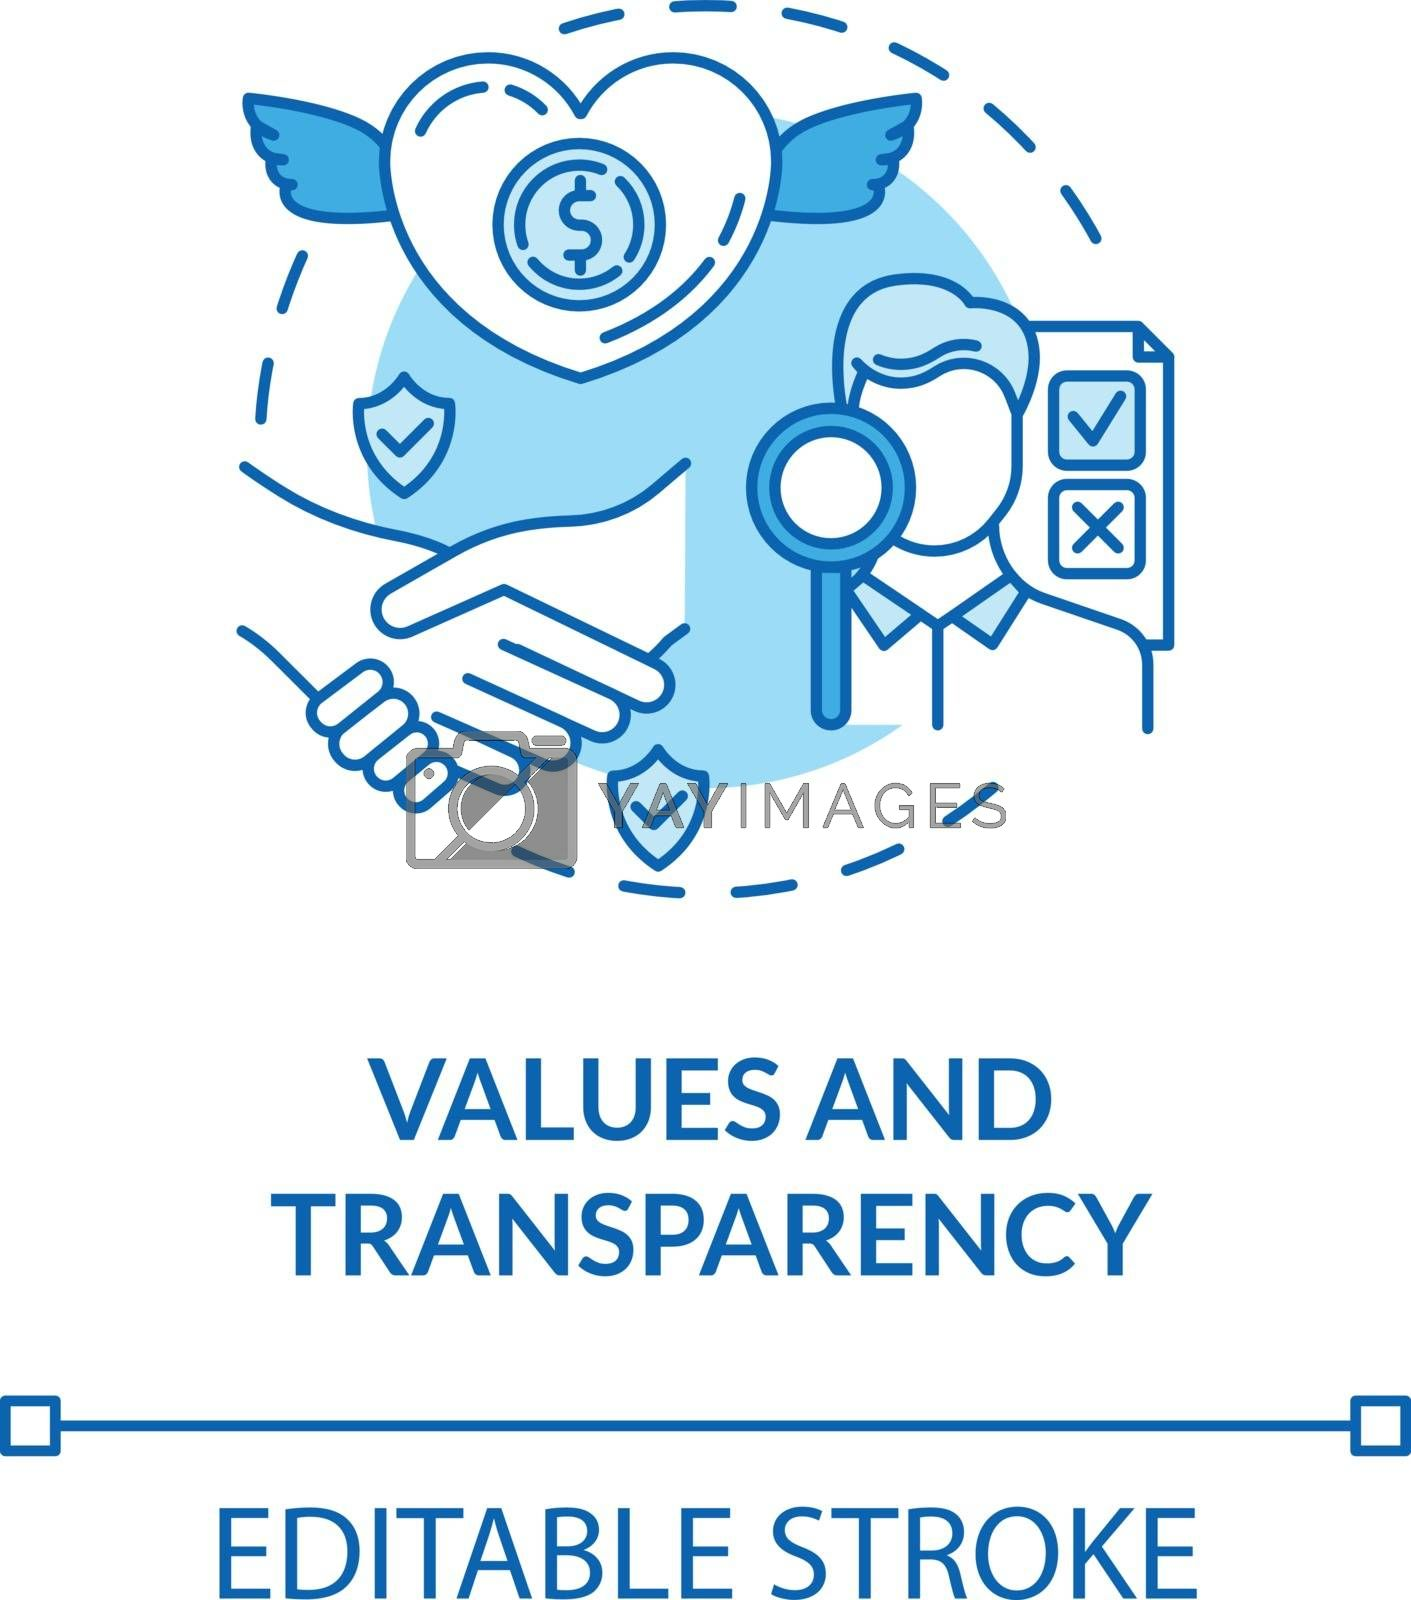 Values and transparency turquoise concept icon. Company reliability. Company culture. Core corporate ethics idea thin line illustration. Vector isolated outline RGB color drawing. Editable stroke